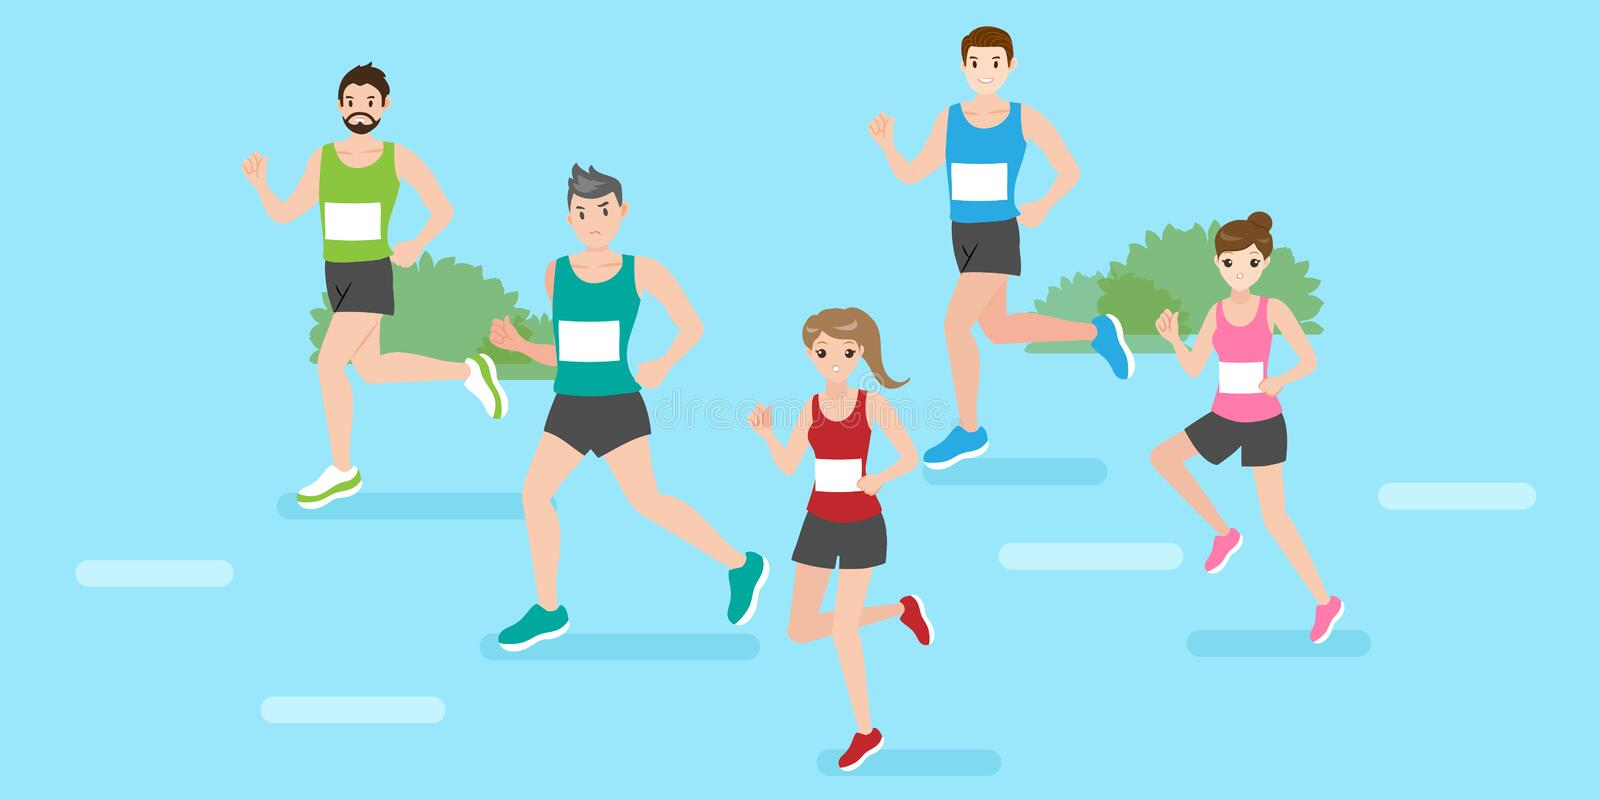 People are running. Cute cartoon people are running for your sport concept vector illustration